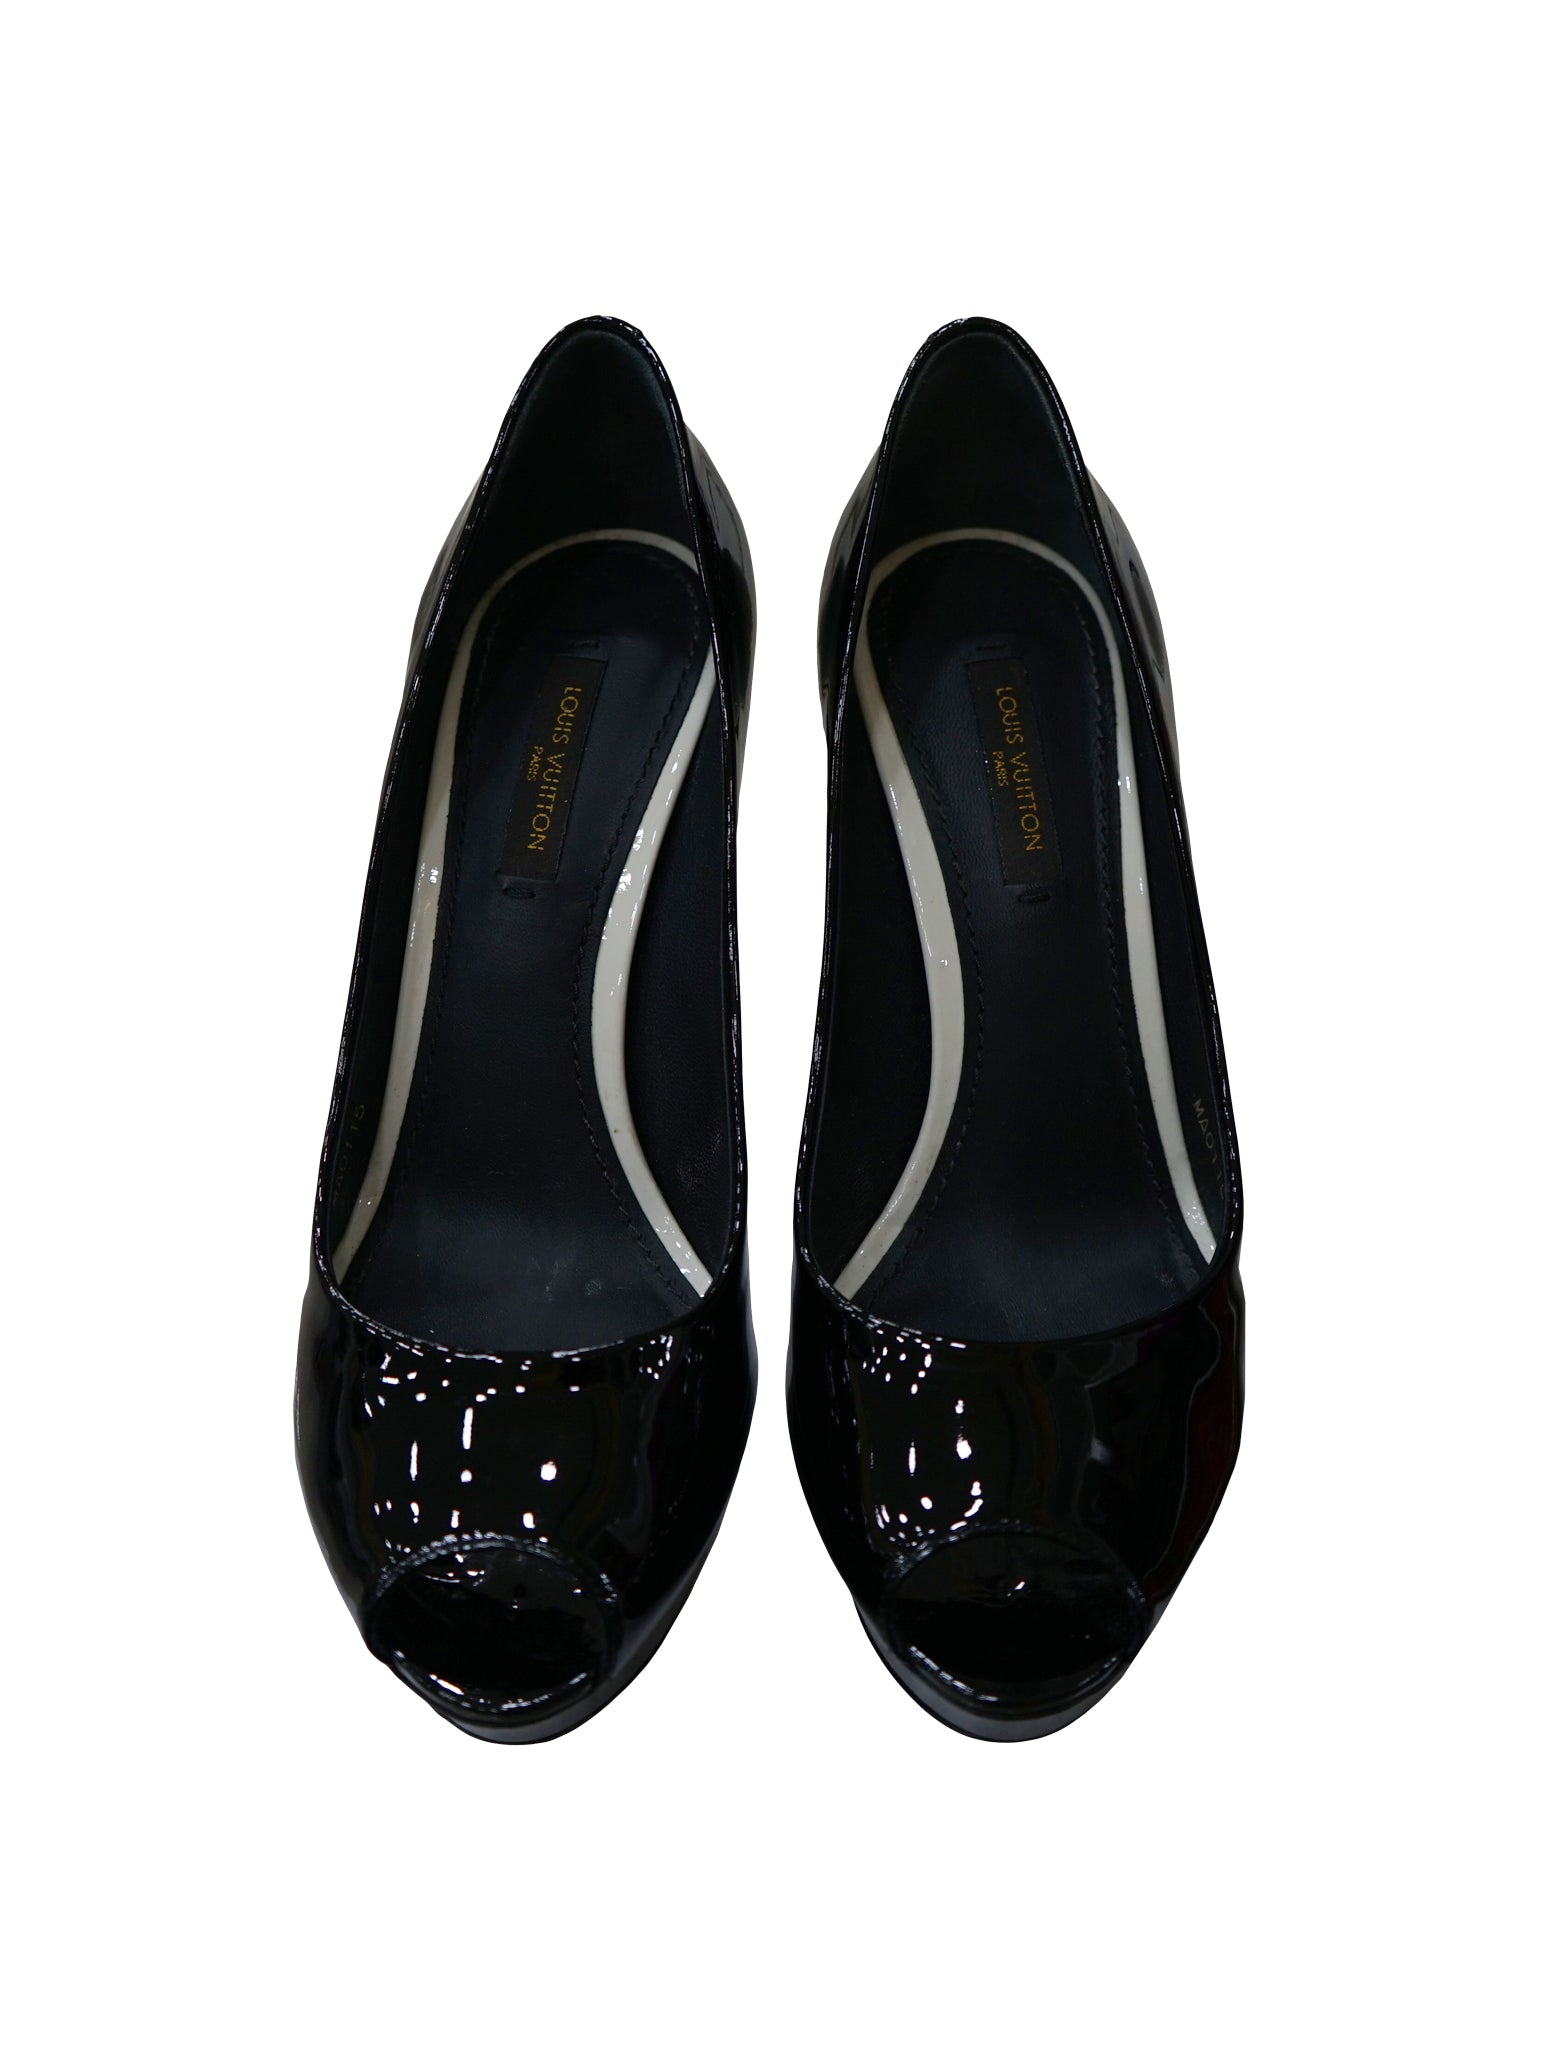 BLACK PATENT LEATHER EYELINE PEEP TOE